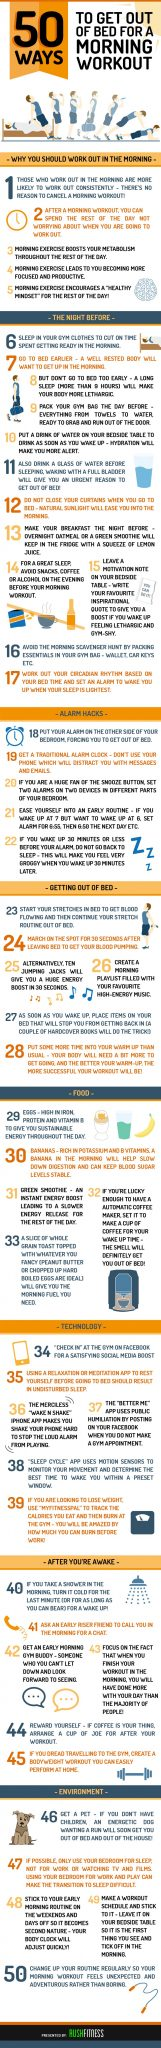 Rush Fitness - 50 ways - infographic